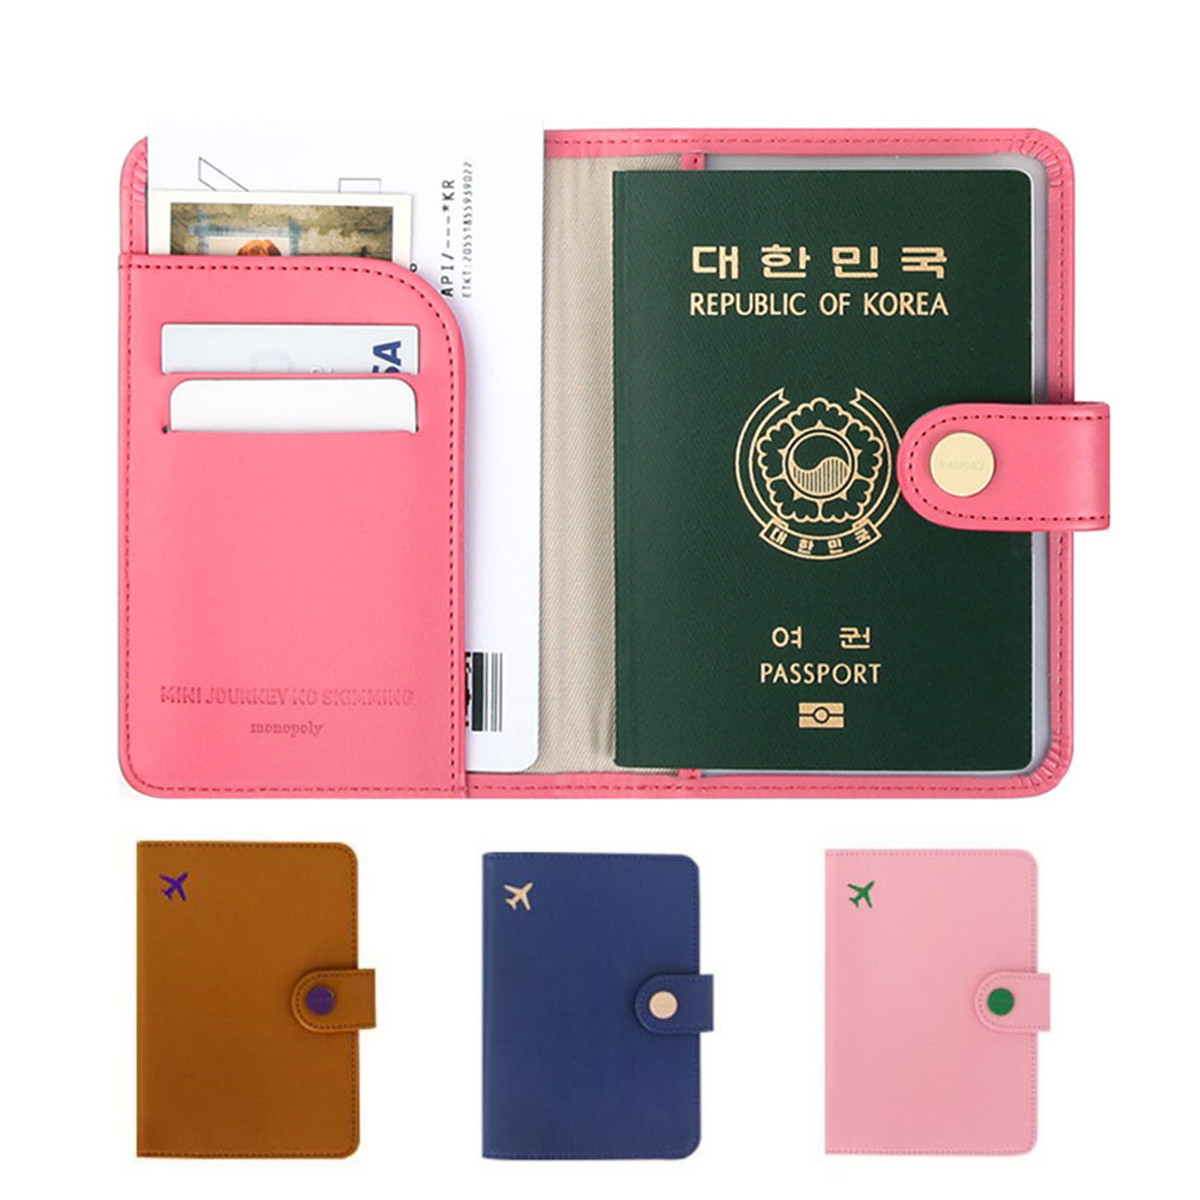 178bfb5b4 Insightful Reviews for passport rfid protective holders and get free ...